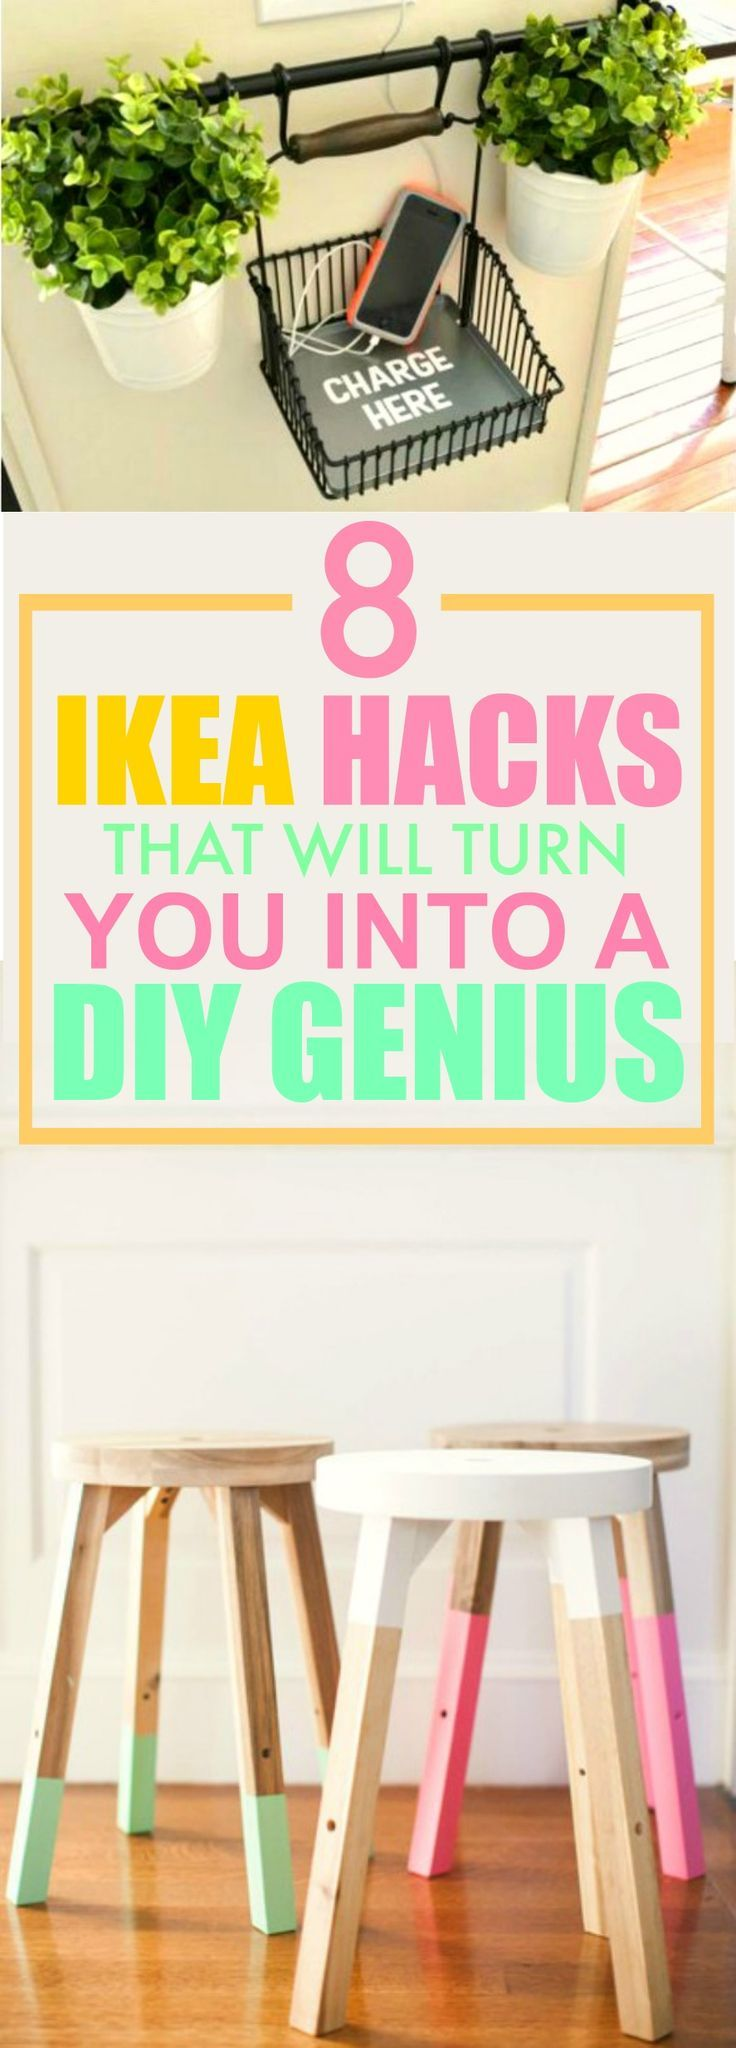 These 8 IKEA Hacks are THE BEST! I'm so glad I found this AWESOME post! I'm SO gonna try the 3rd one, it's so pretty! I'm definitely pinning for later!